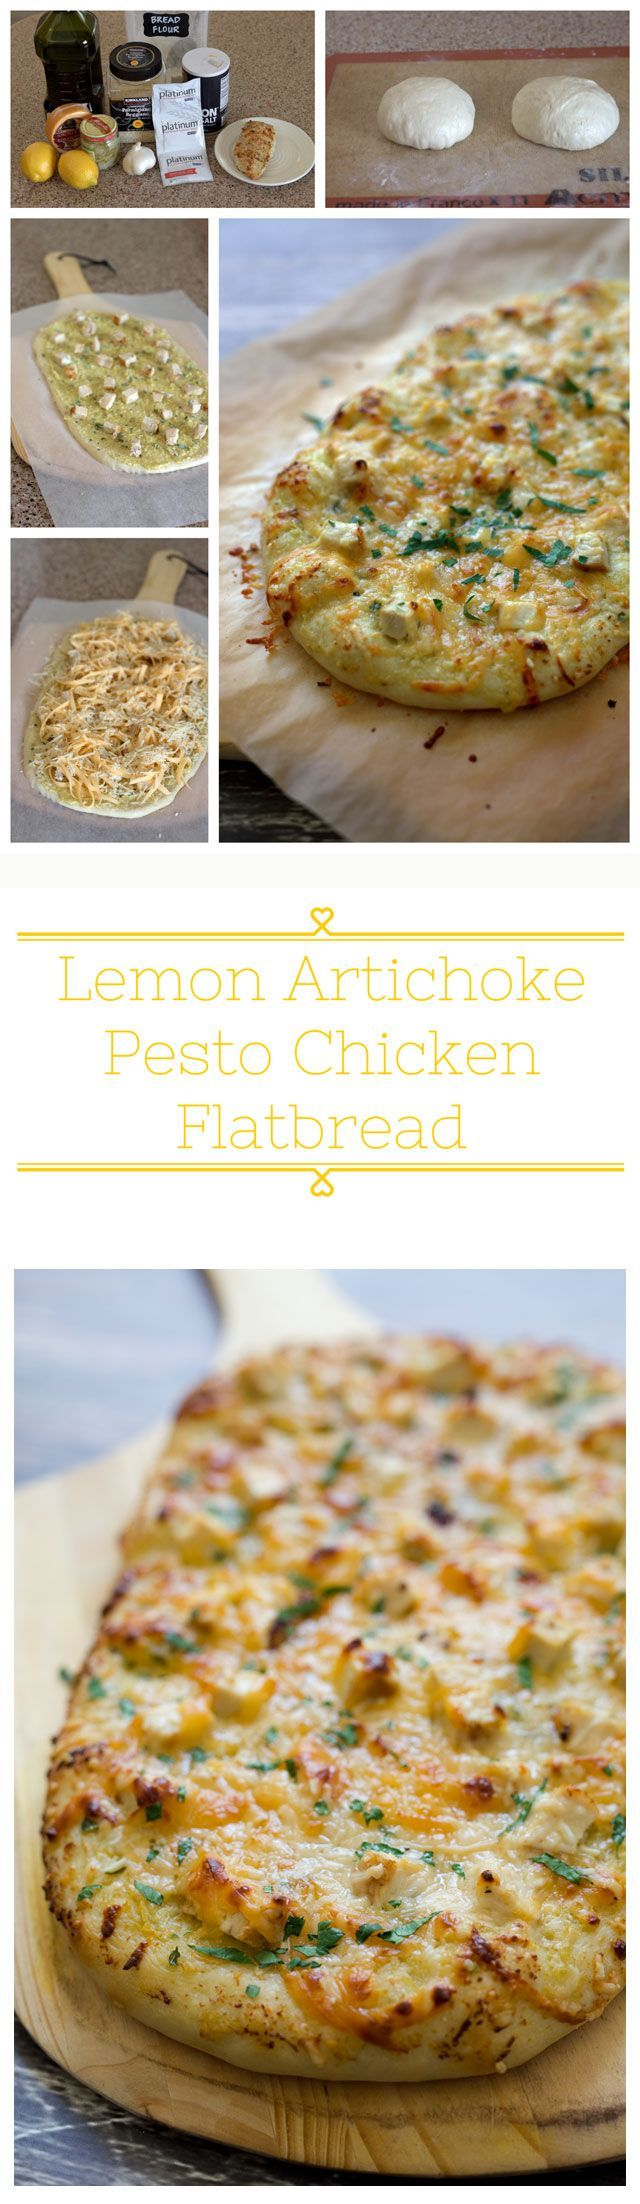 An easy-to-make flatbread topped with a flavorful lemon artichoke pesto, diced grilled chicken and smokey gouda cheese then baked until it's golden brown and gooey, cheesy delicious.